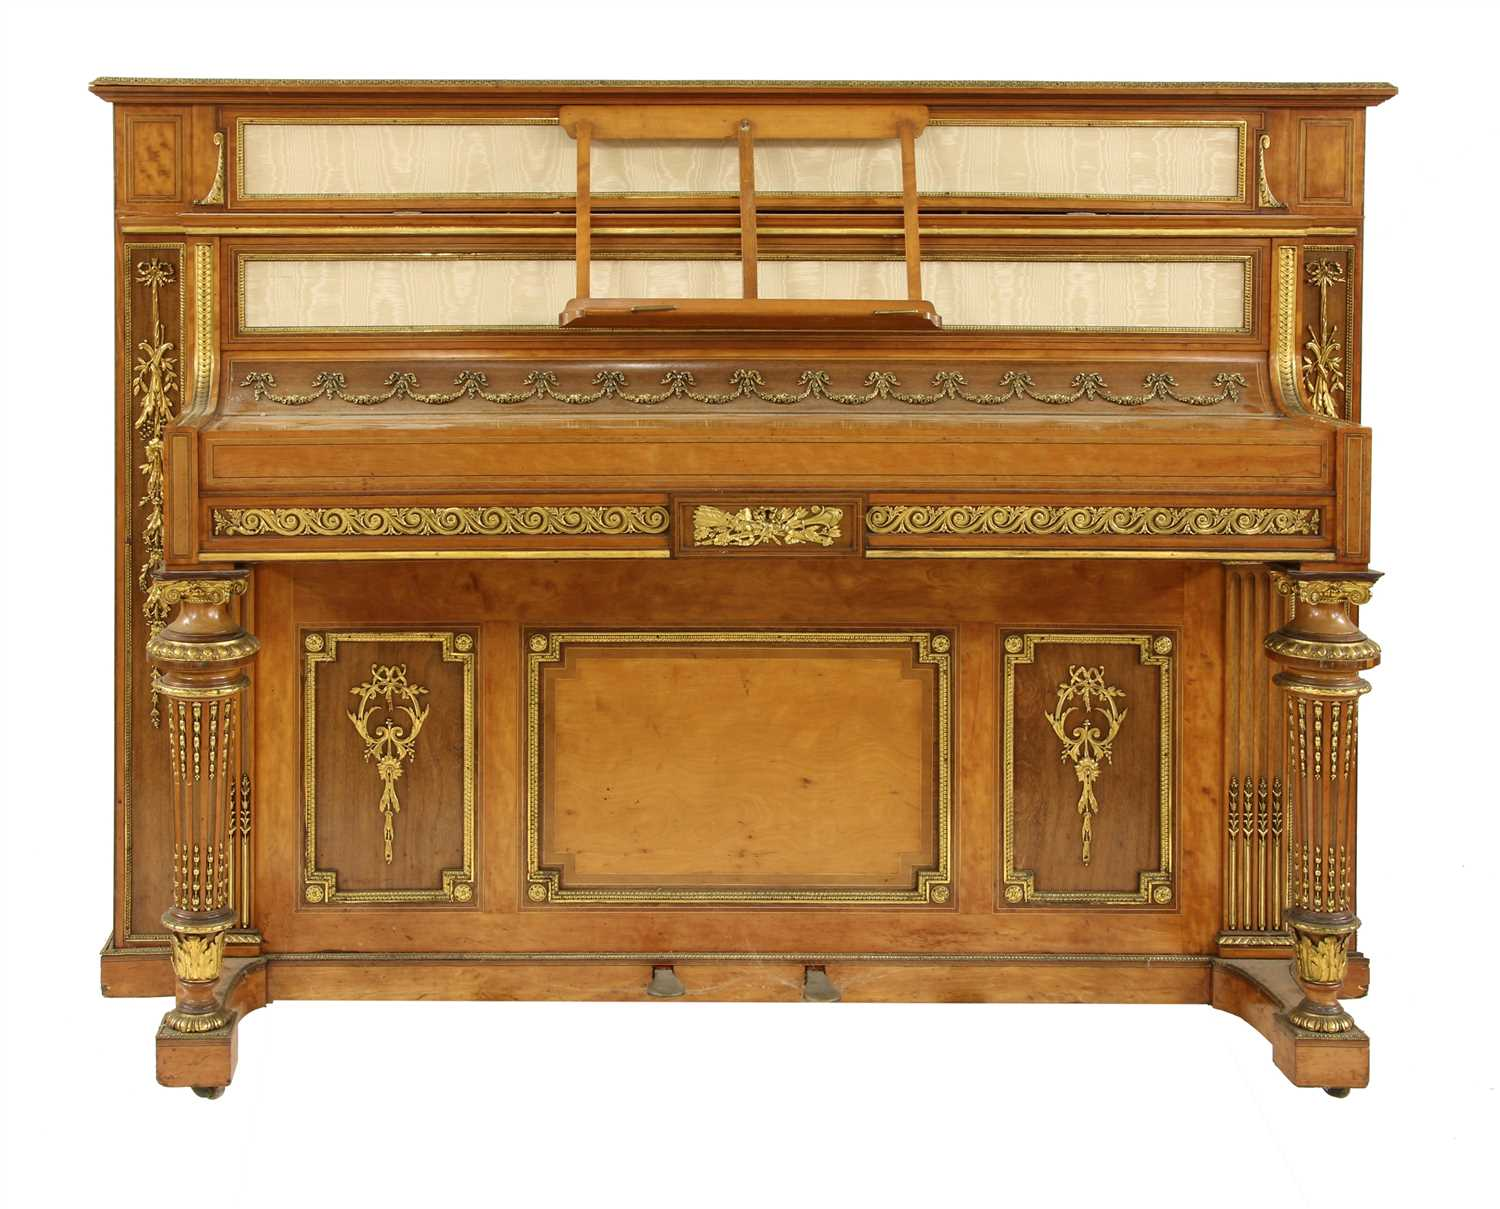 621 - An exhibition quality and ormolu-mounted upright piano